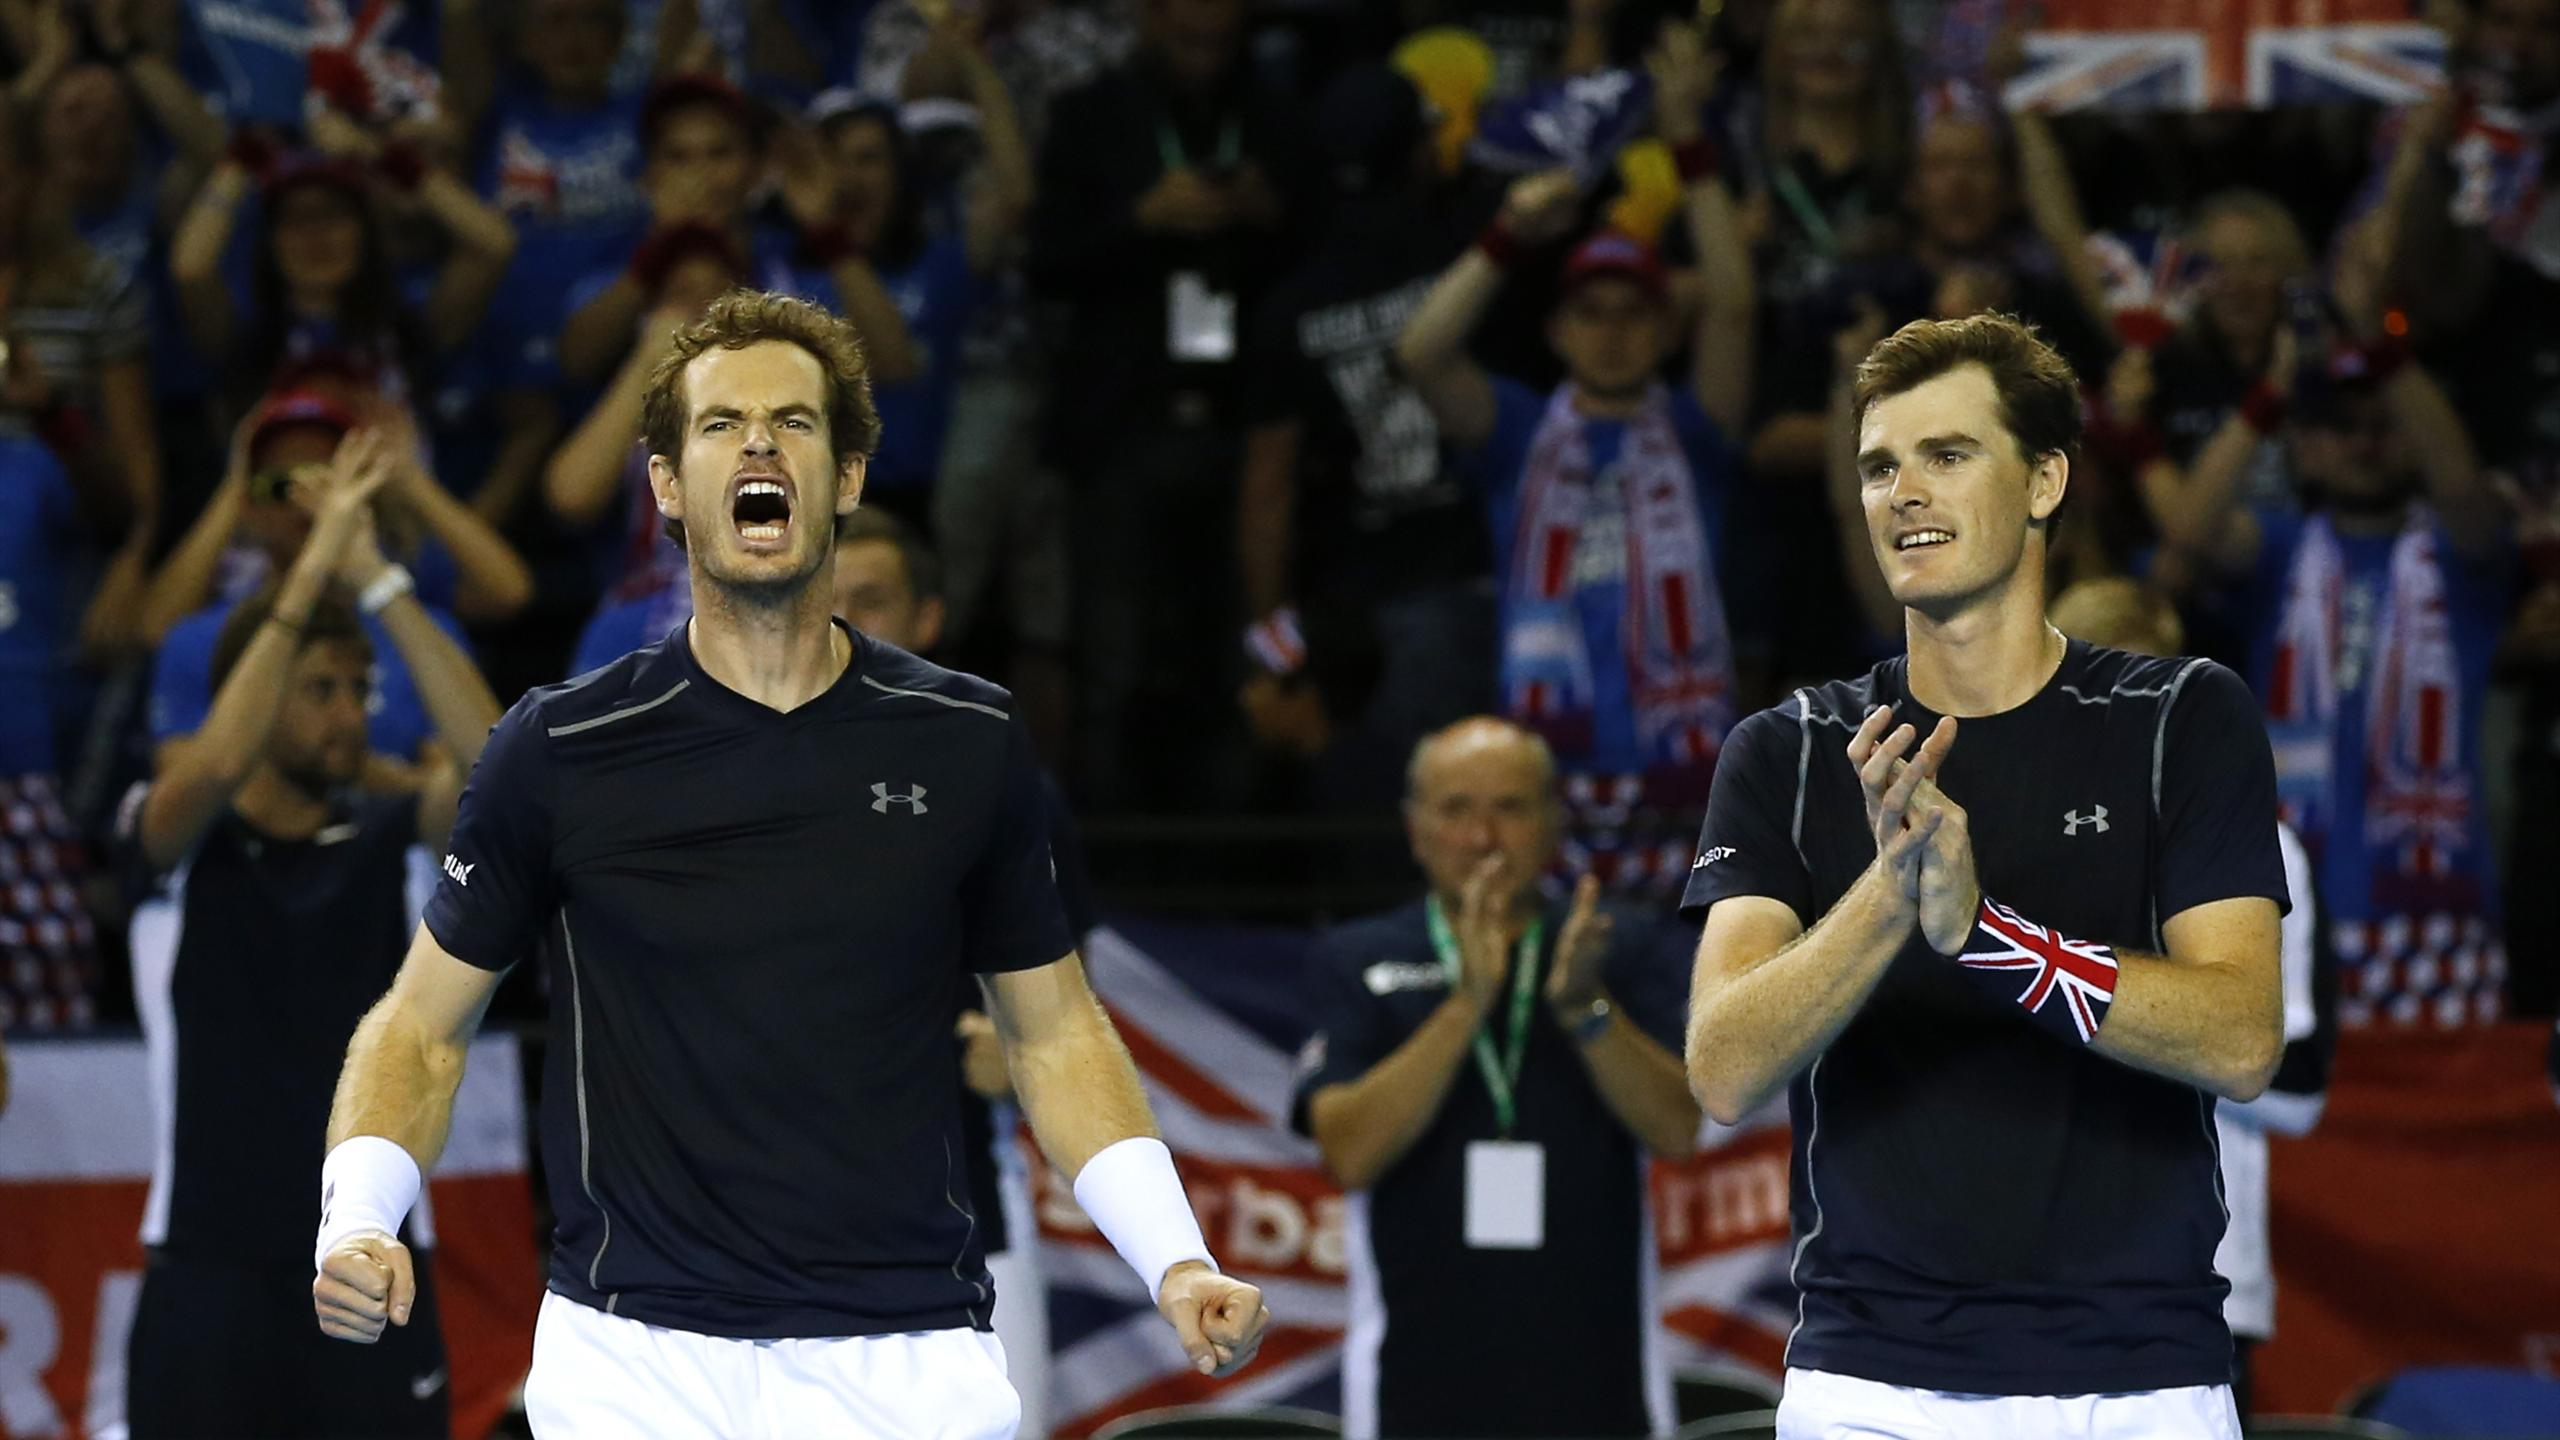 Andy and Jamie Murray celebrate Great Britain's doubles victory over Argentina in their Davis Cup semi-final